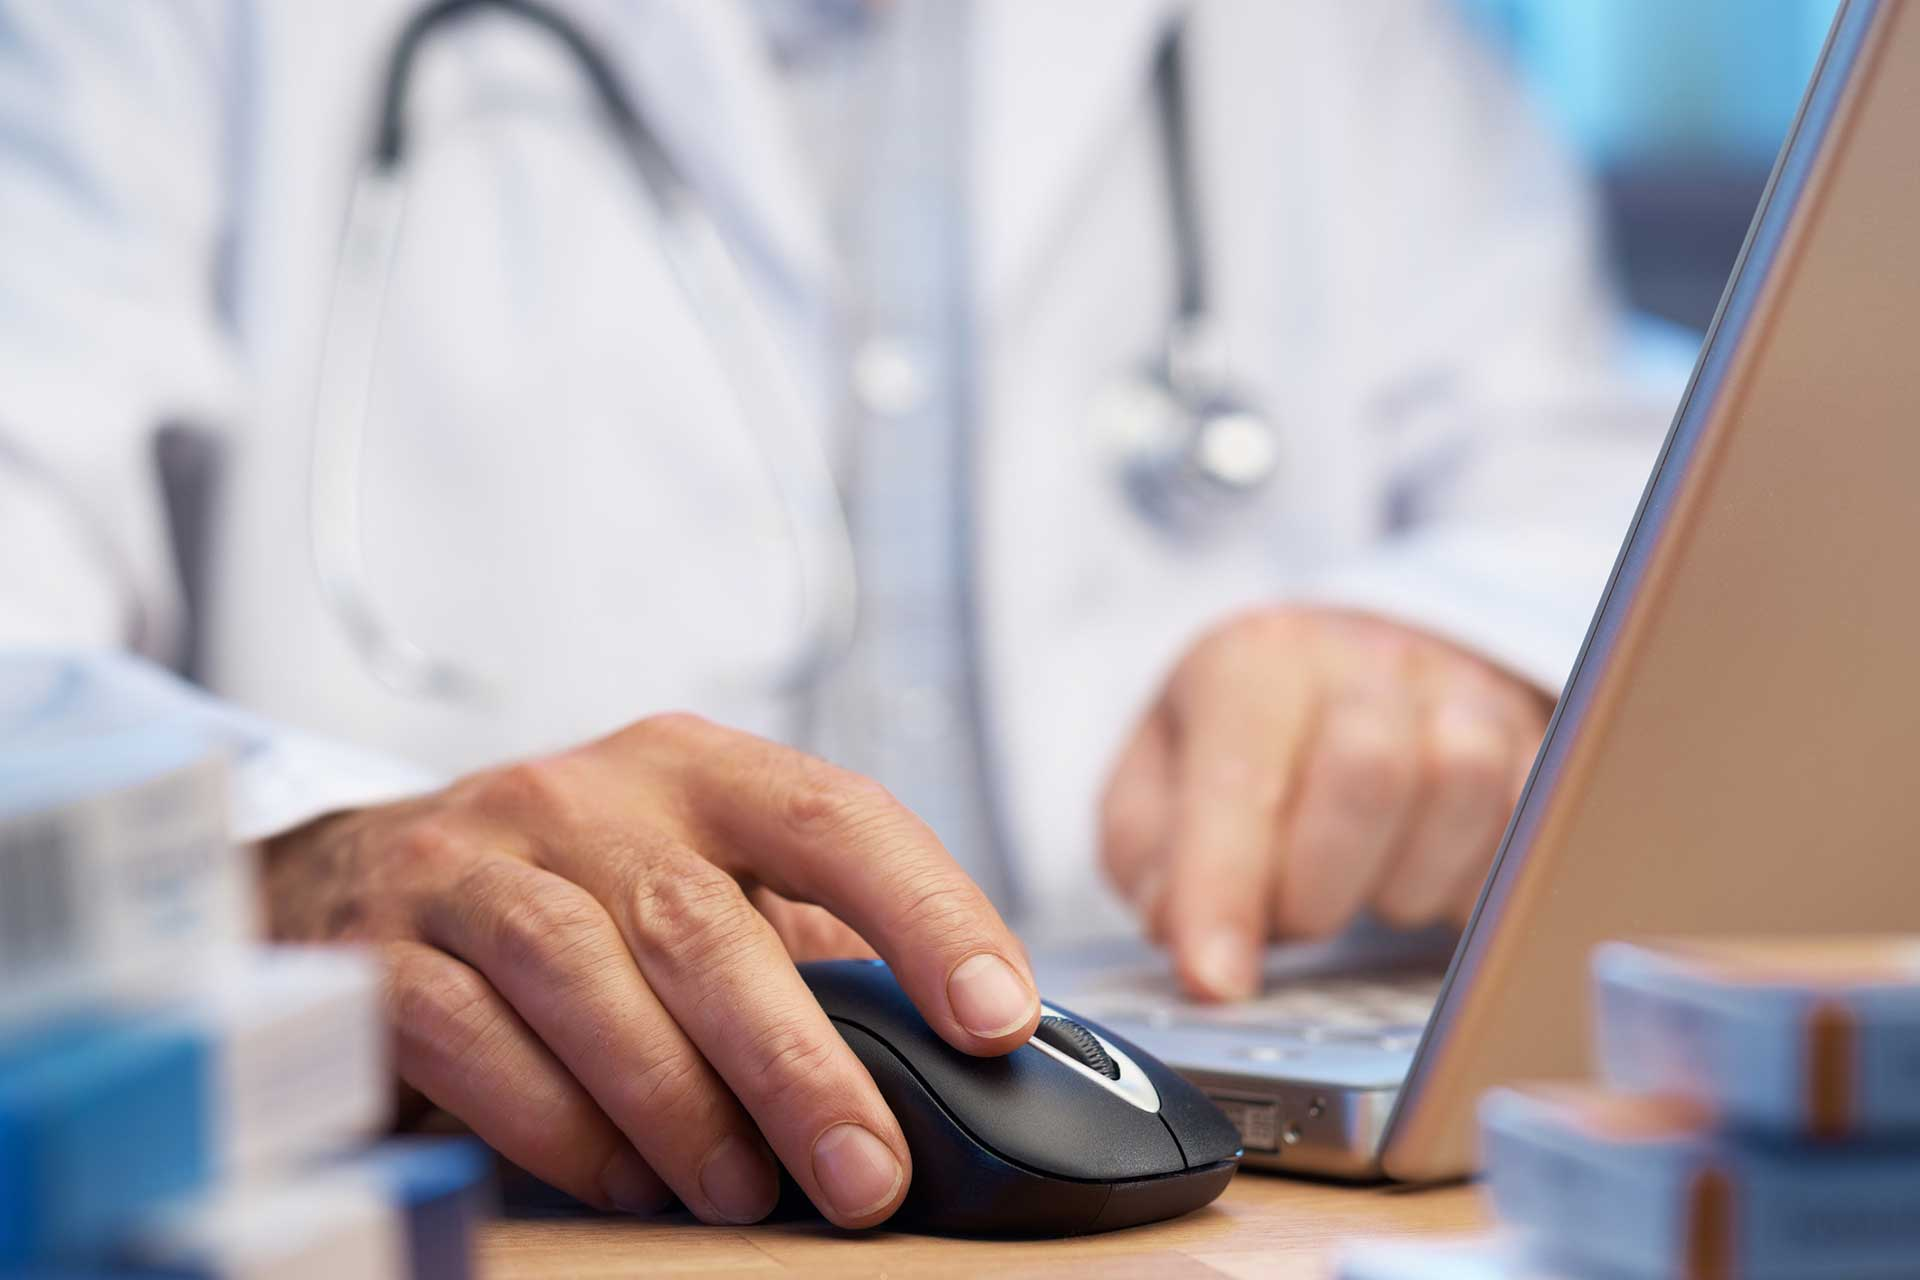 Get Healthcare From Home with eVisit